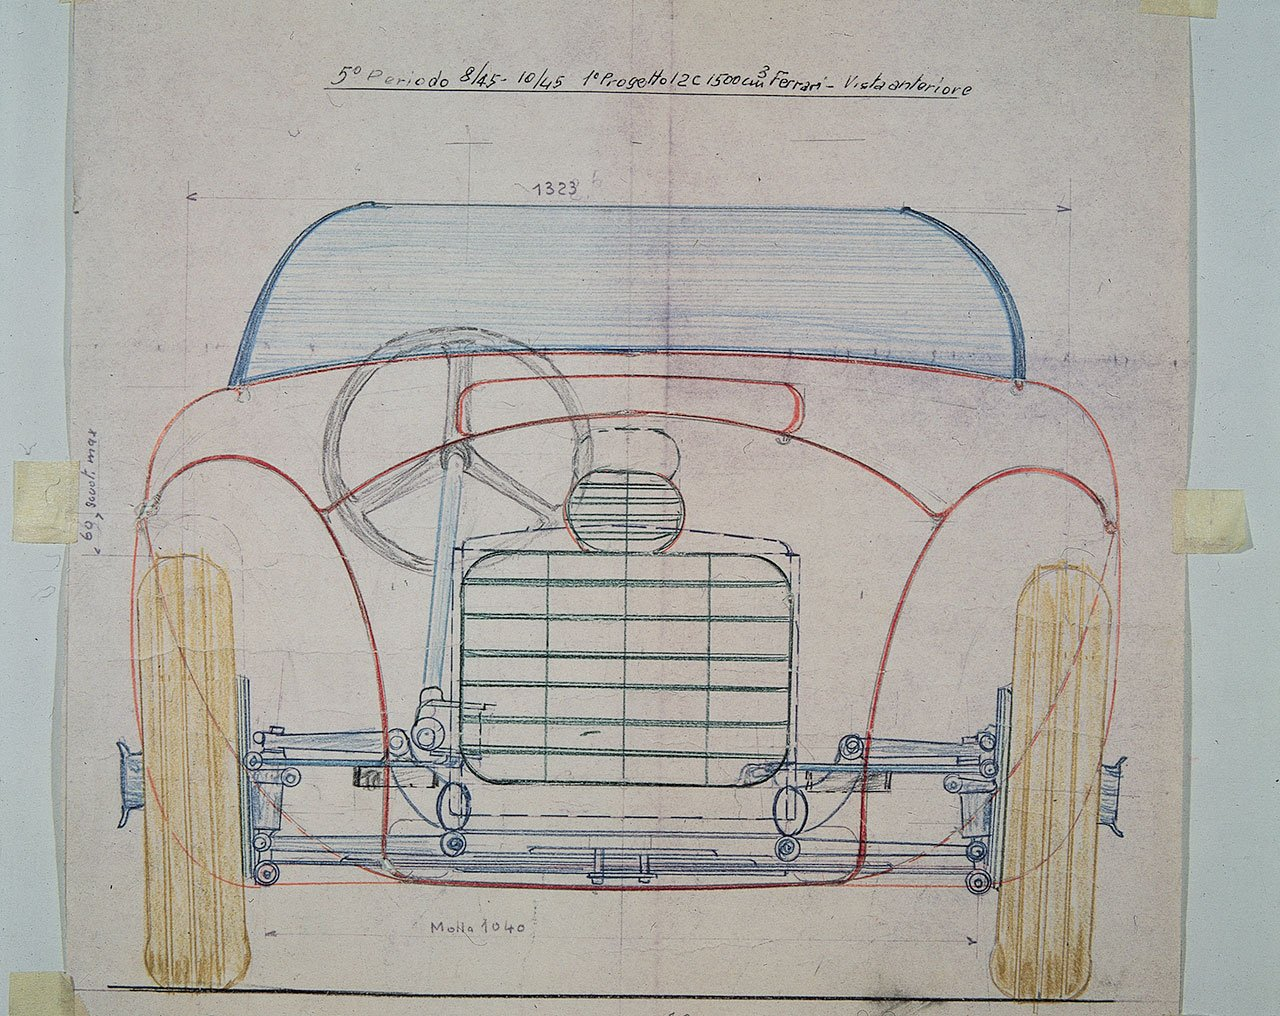 Front View with mechanical transparency of the first Ferrari car, the 125 S. - Project of Gioachino Colombo carried out in August-October 1945. Photo courtesy of Ferrari.